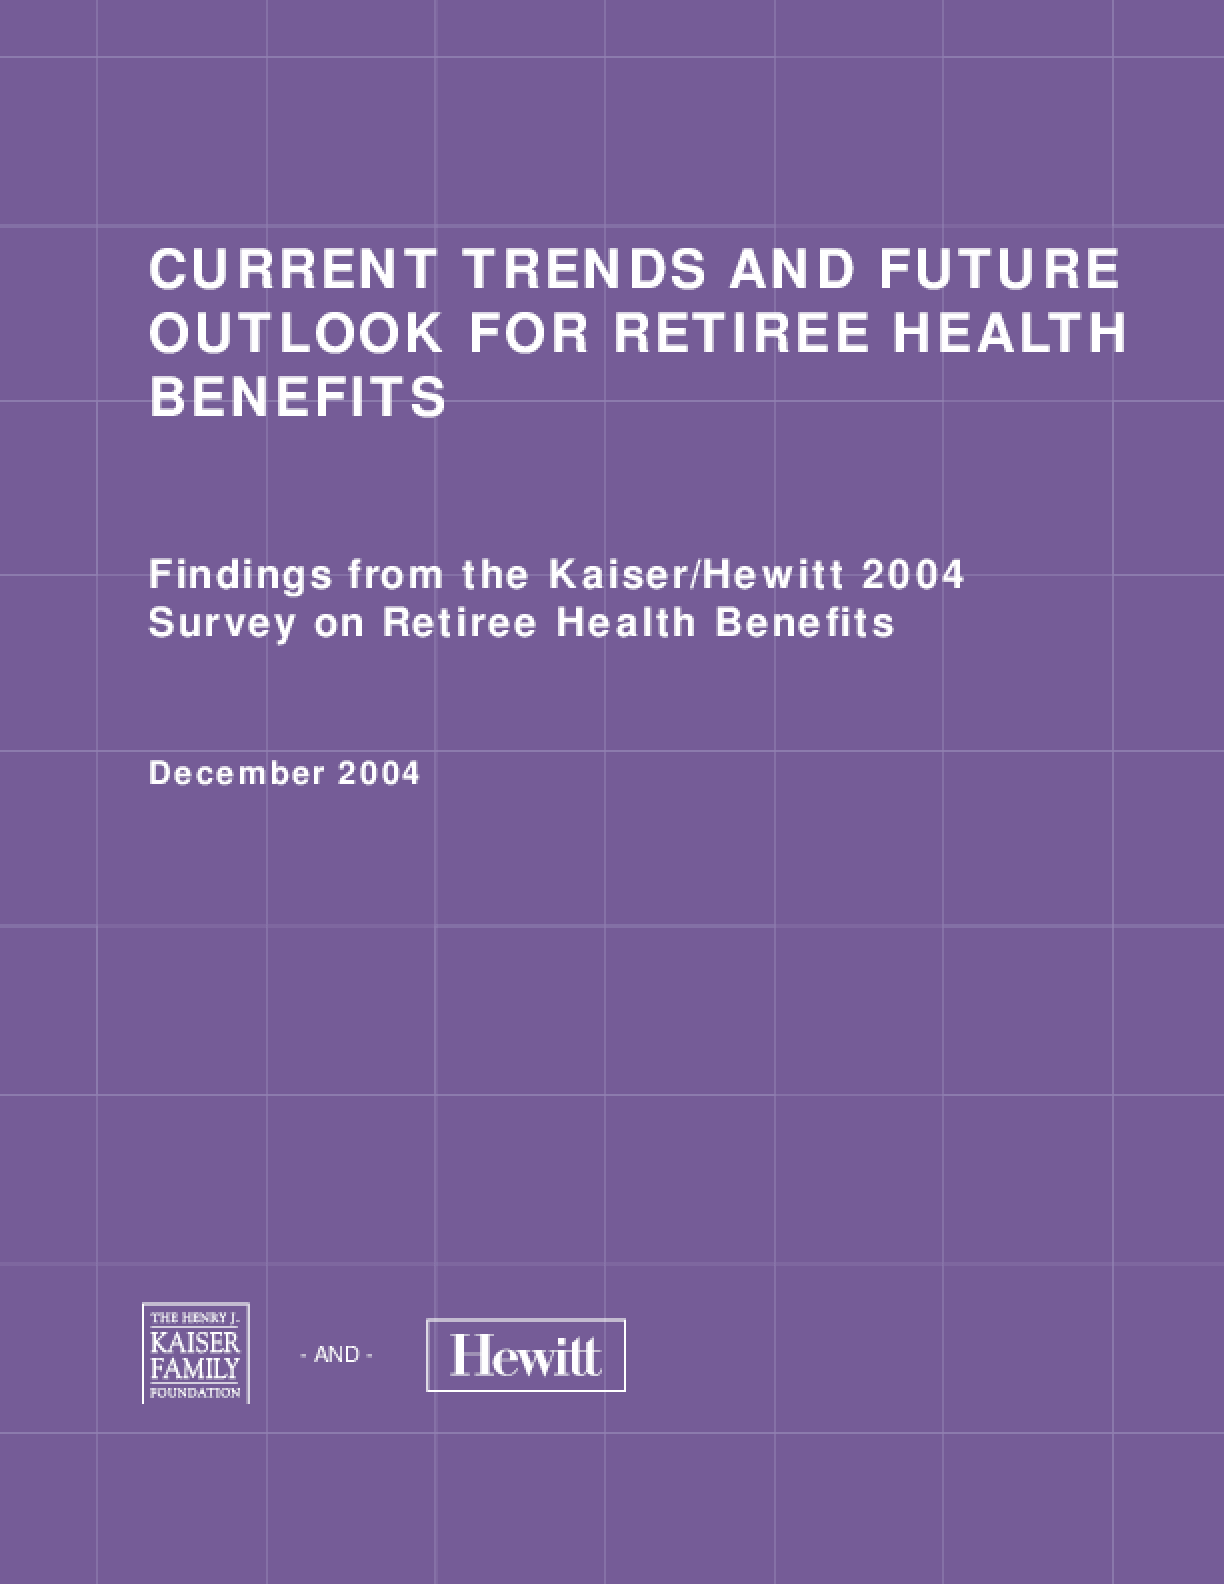 Current Trends and Future Outlook for Retiree Health Benefits